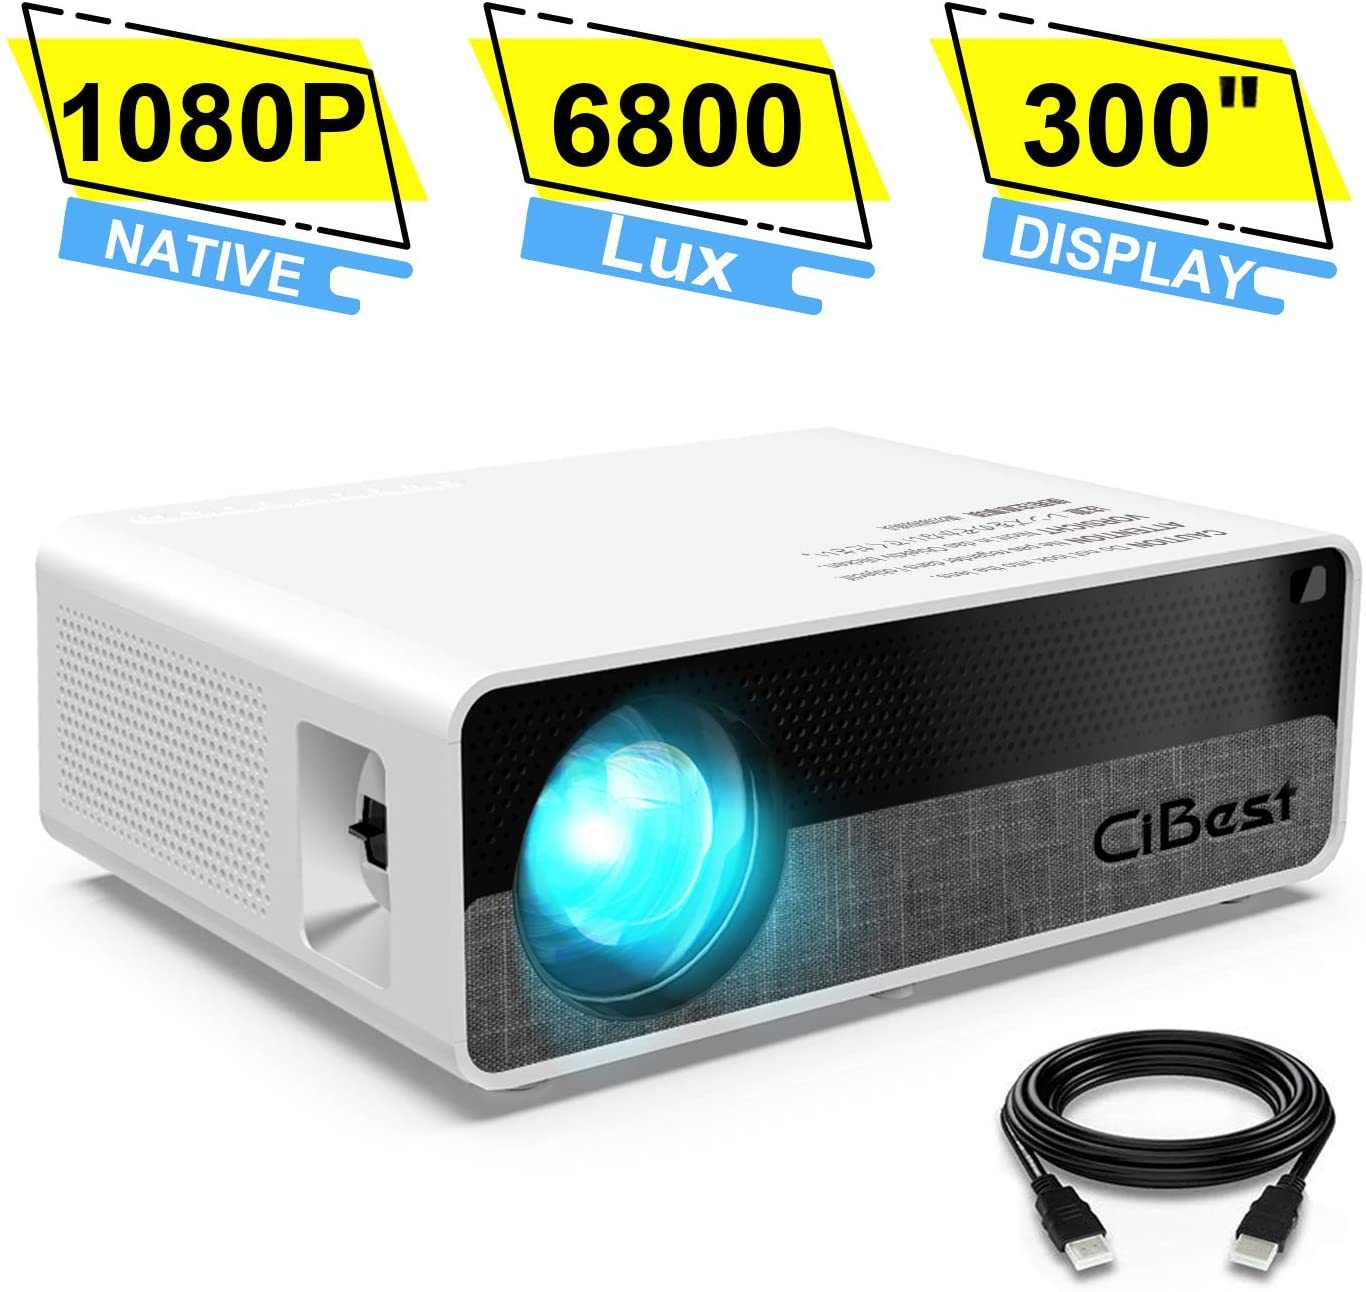 "Projector,CiBest Q9 Native 1080P HD Video Projector 6800 Lux, up to 300"" Image 2K Supported,Display Ideal for PPT Business Presentations Home Theater Entertainment Parties Games"